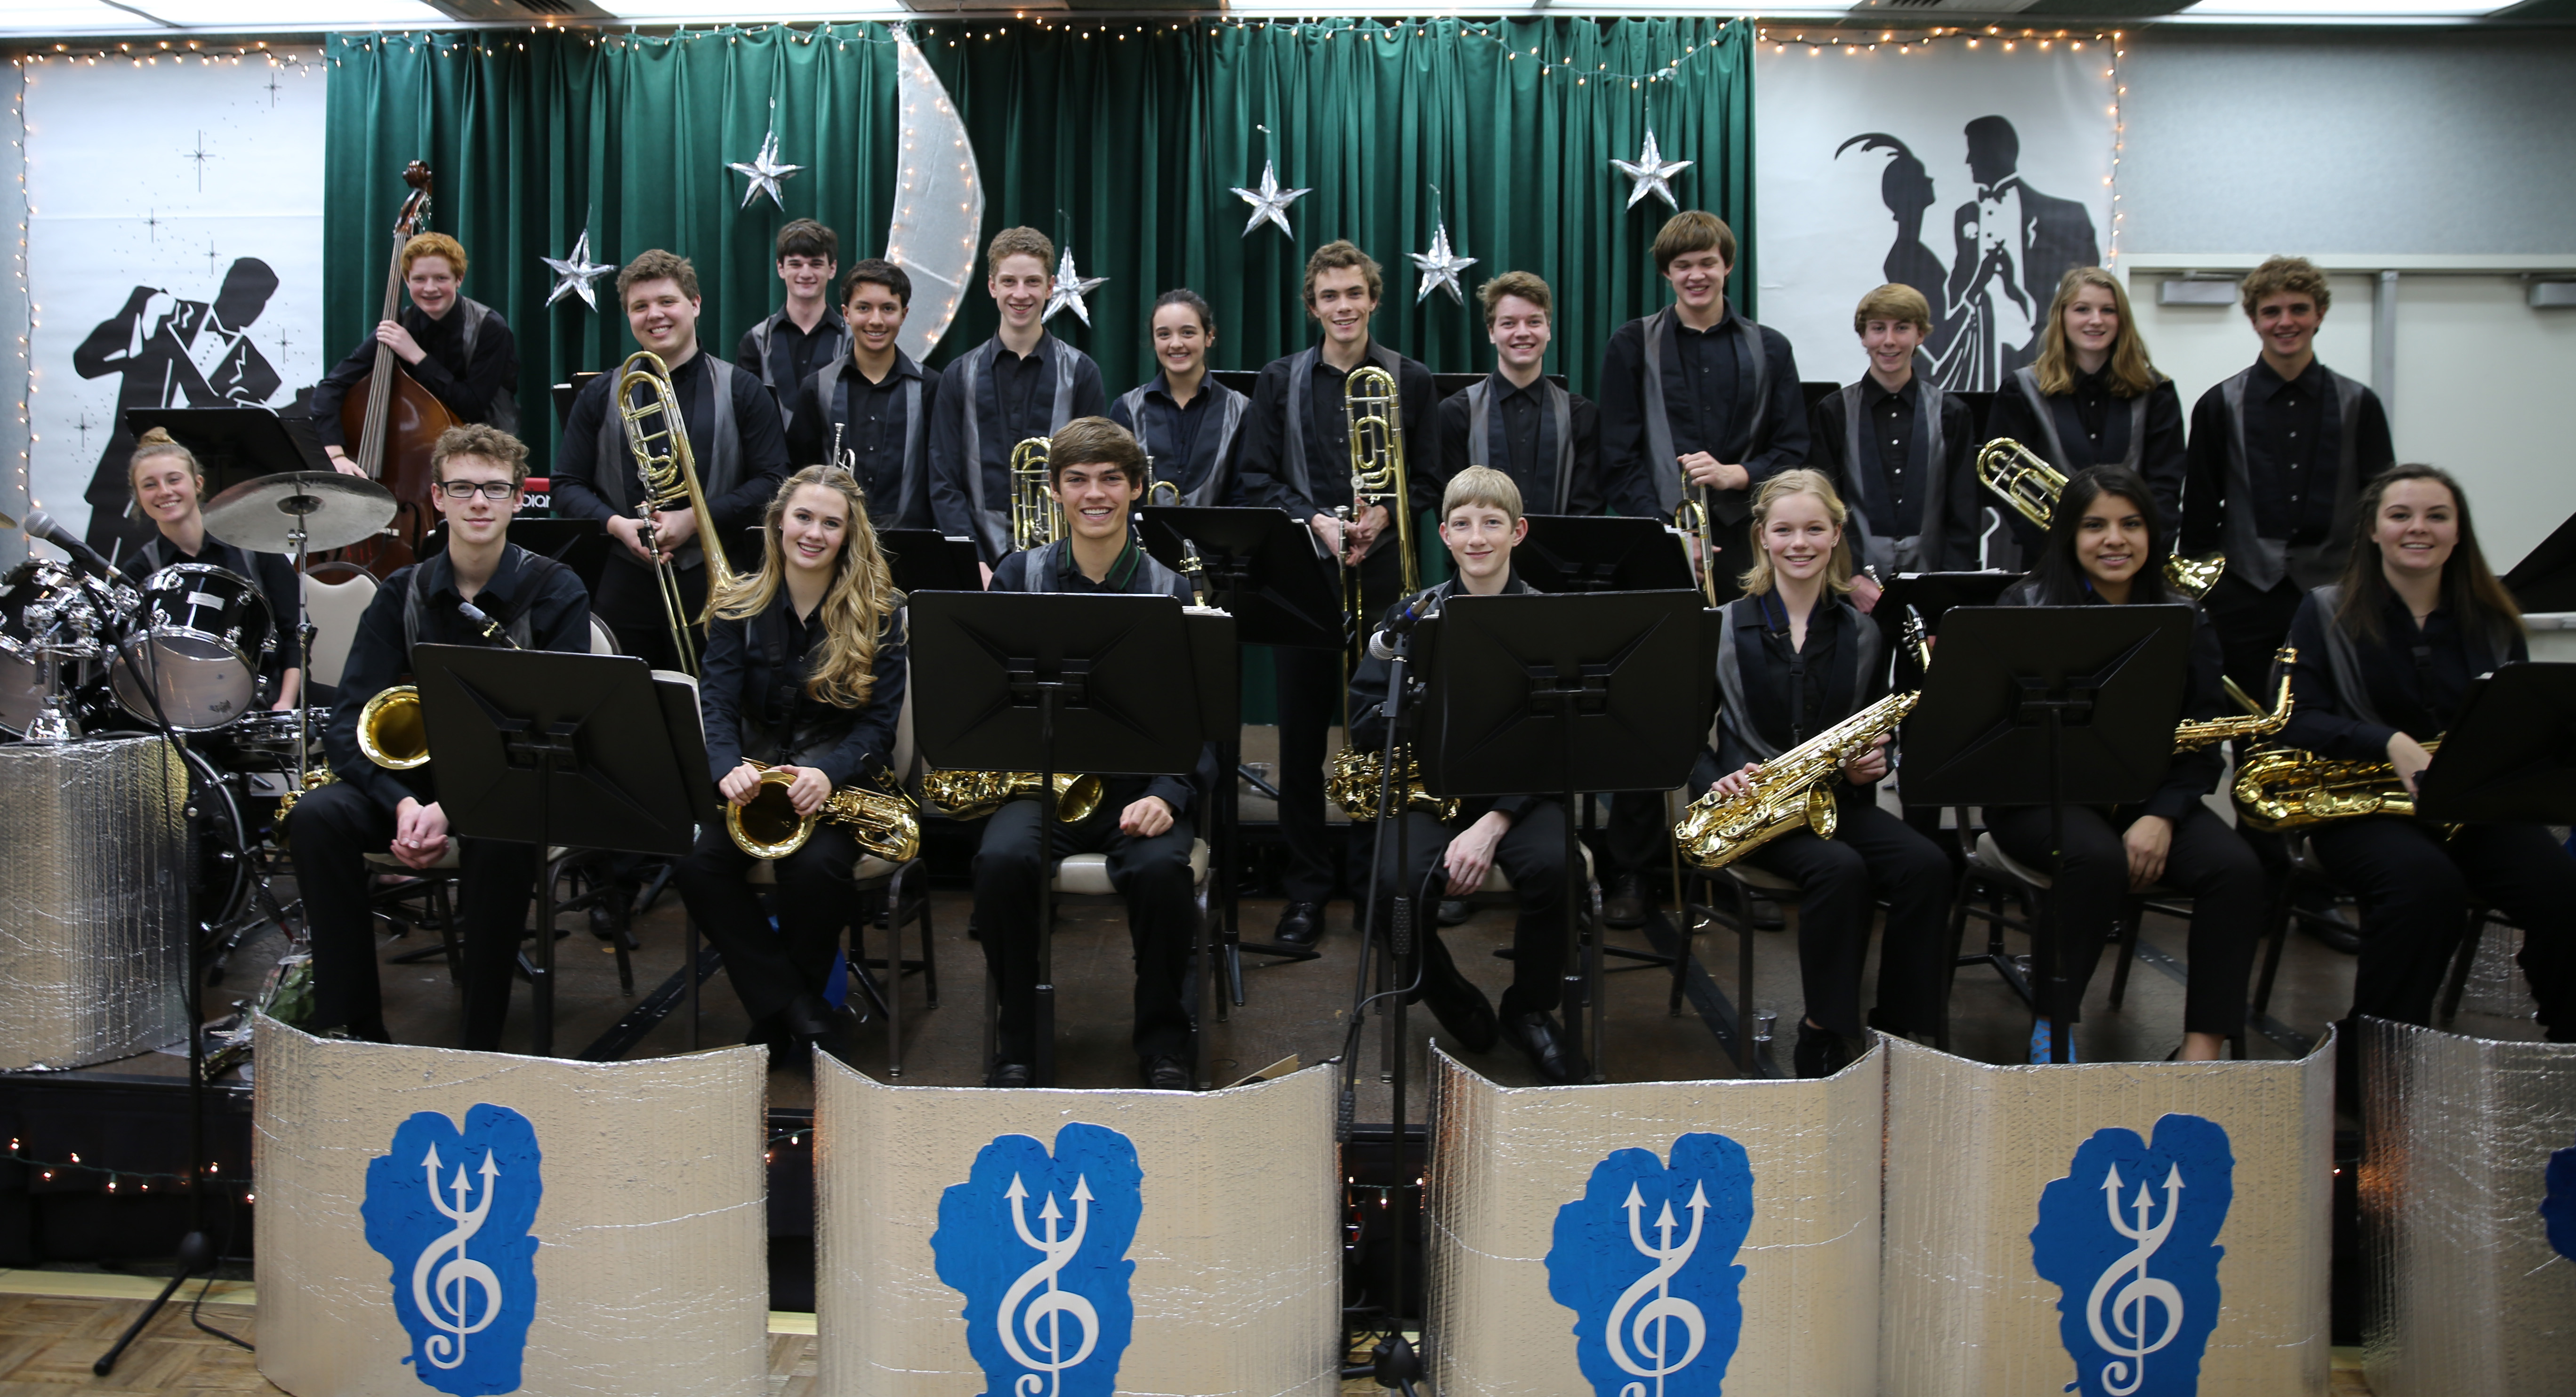 The NTHS Jazz Band